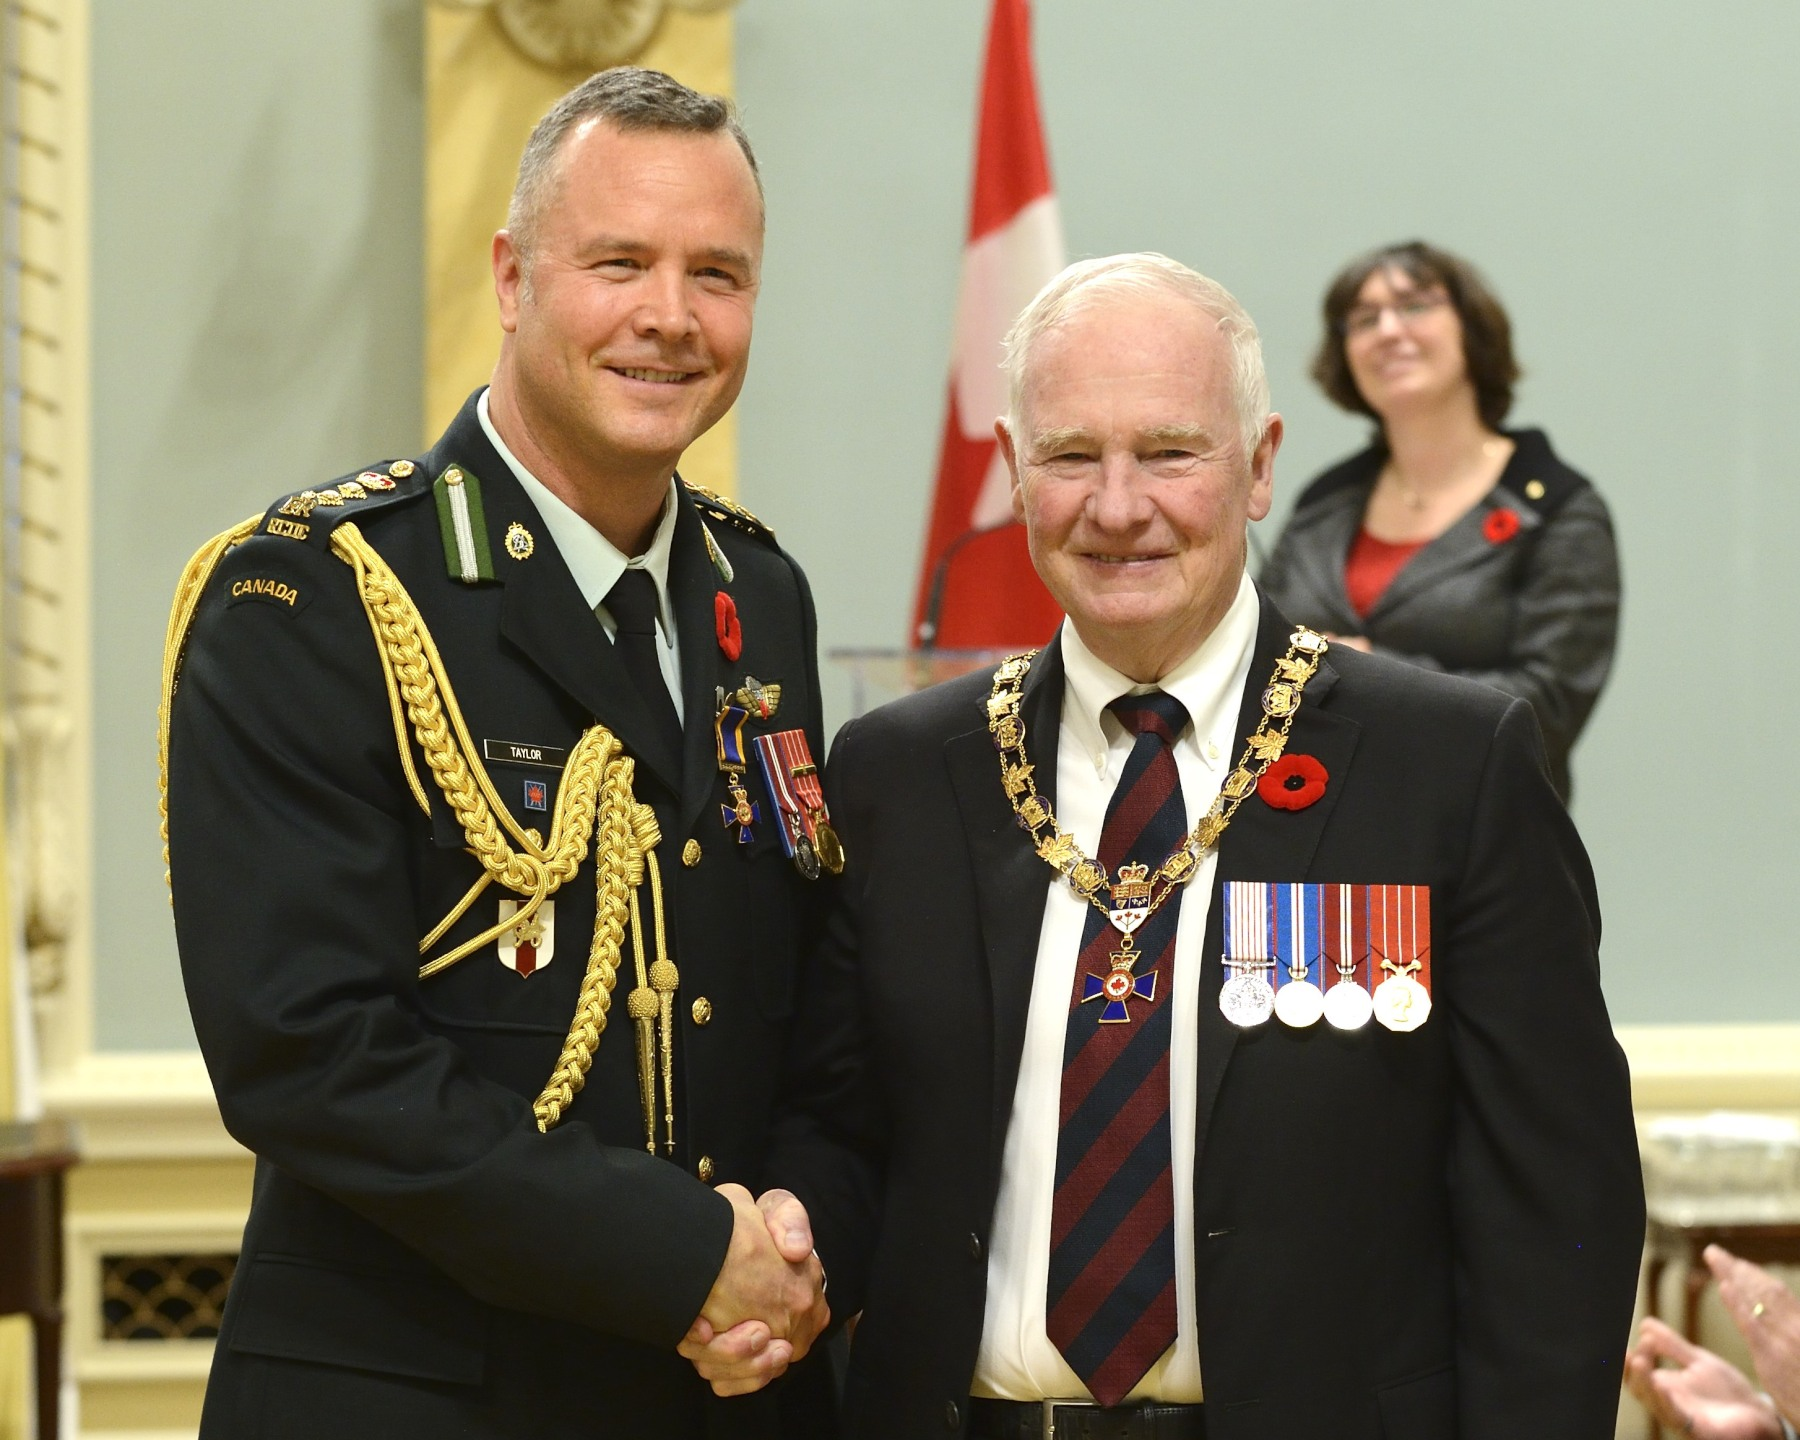 His Excellency presented the Order of Military Merit at the Officer level (O.M.M.) to Colonel James Taylor, O.M.M., C.D., Canadian Forces Health Services Group Headquarters, Ottawa, Ontario.